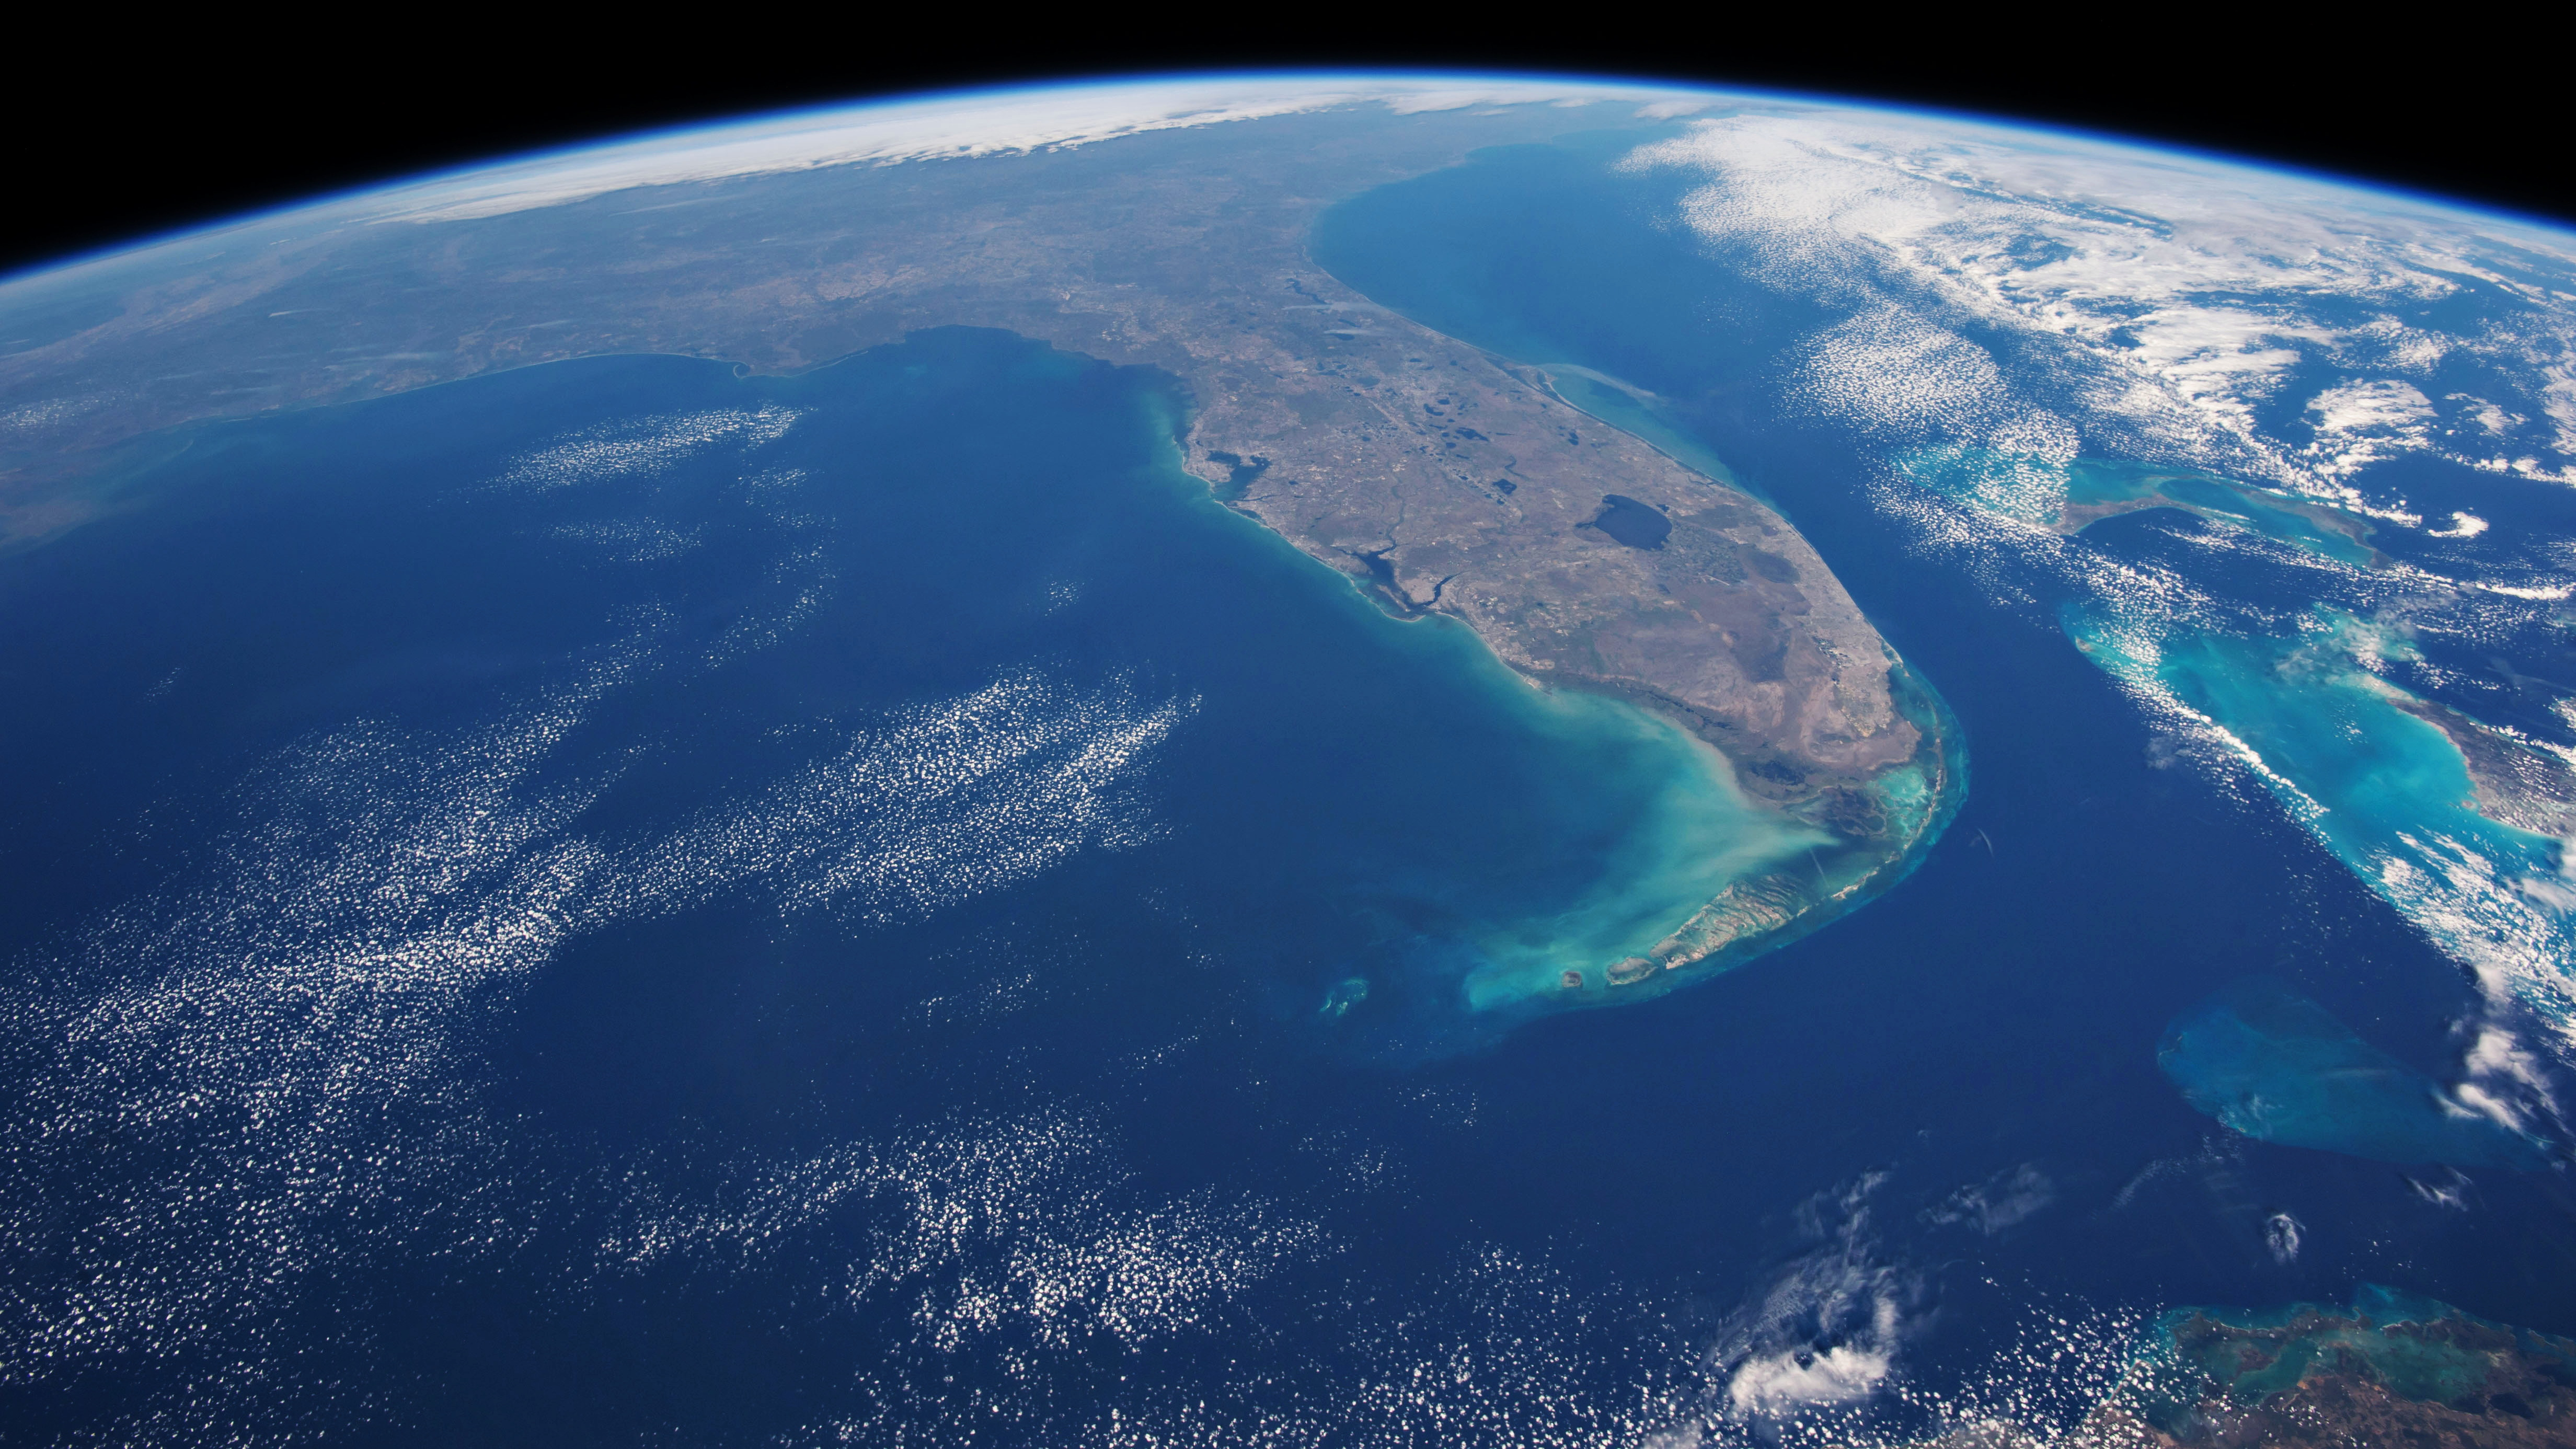 Florida from Space HD Wallpaper Wide Screen Wallpaper 1080p2K4K 4928x2772